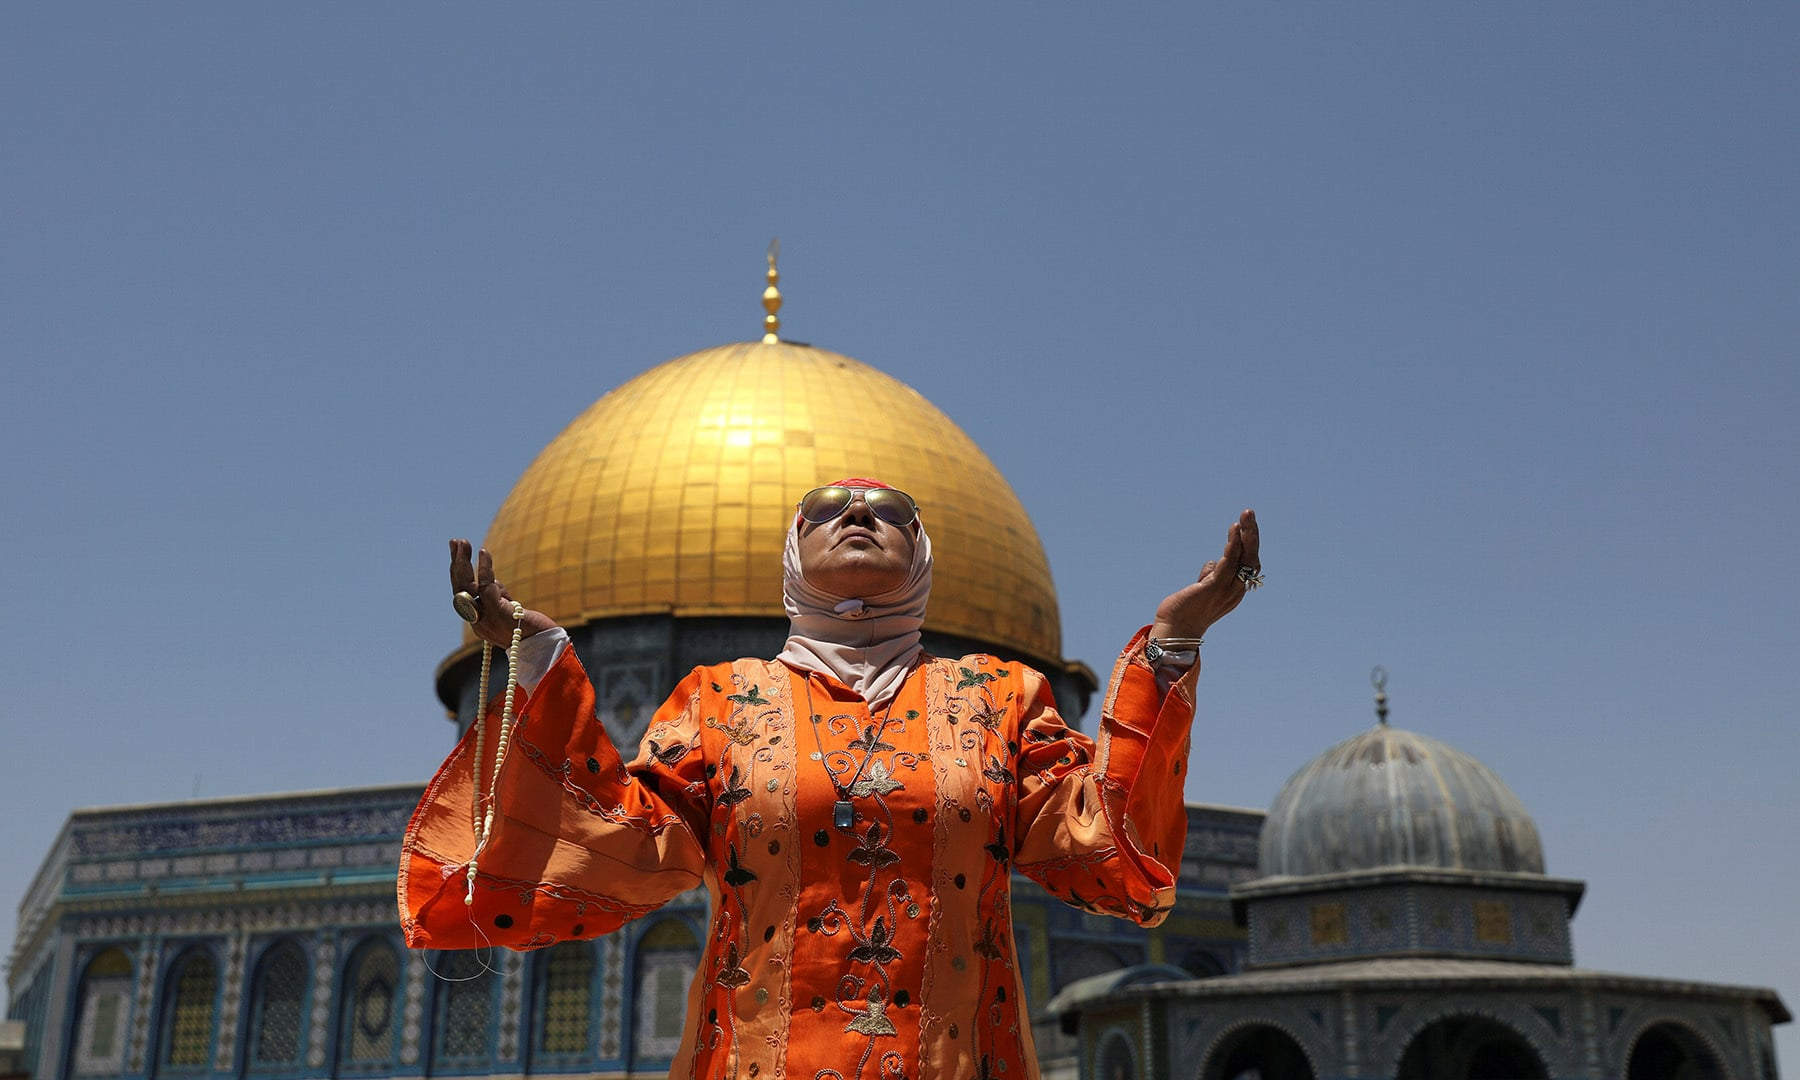 A Muslim woman prays on the last Friday of Ramazan in front of the Dome of the Rock, in the compound known to Muslims as Noble Sanctuary and to Jews as Temple Mount, in Jerusalem's Old City on Friday. — Reuters